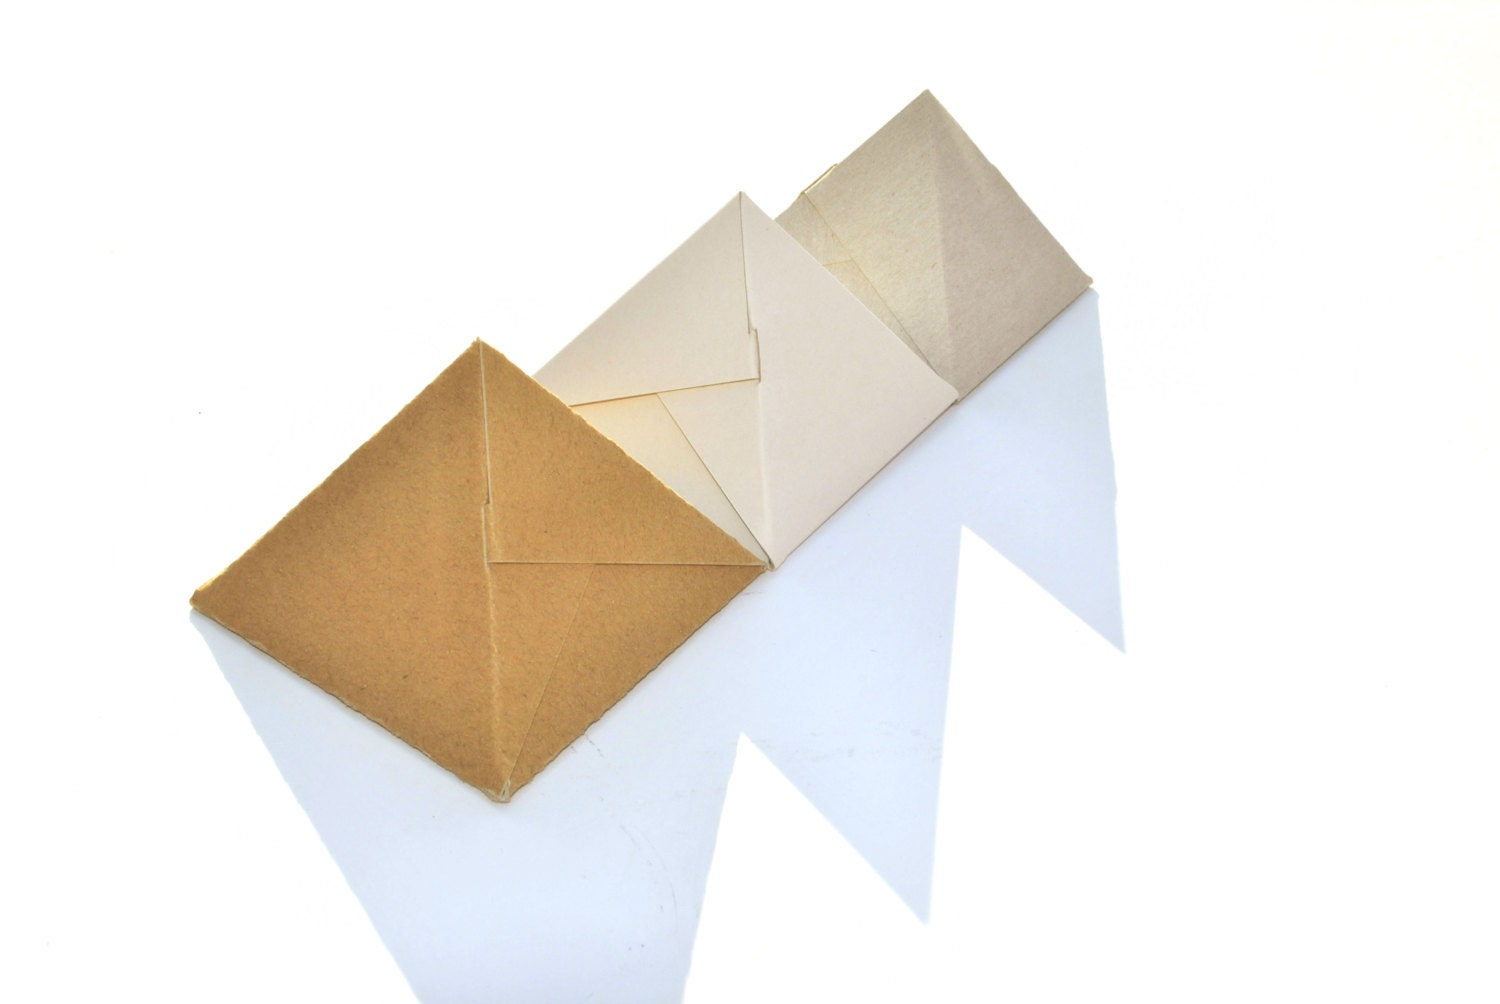 Favor Gift Boxes: 20 Pyramid Shaped Favor Boxes Gift Boxes Party Favors I